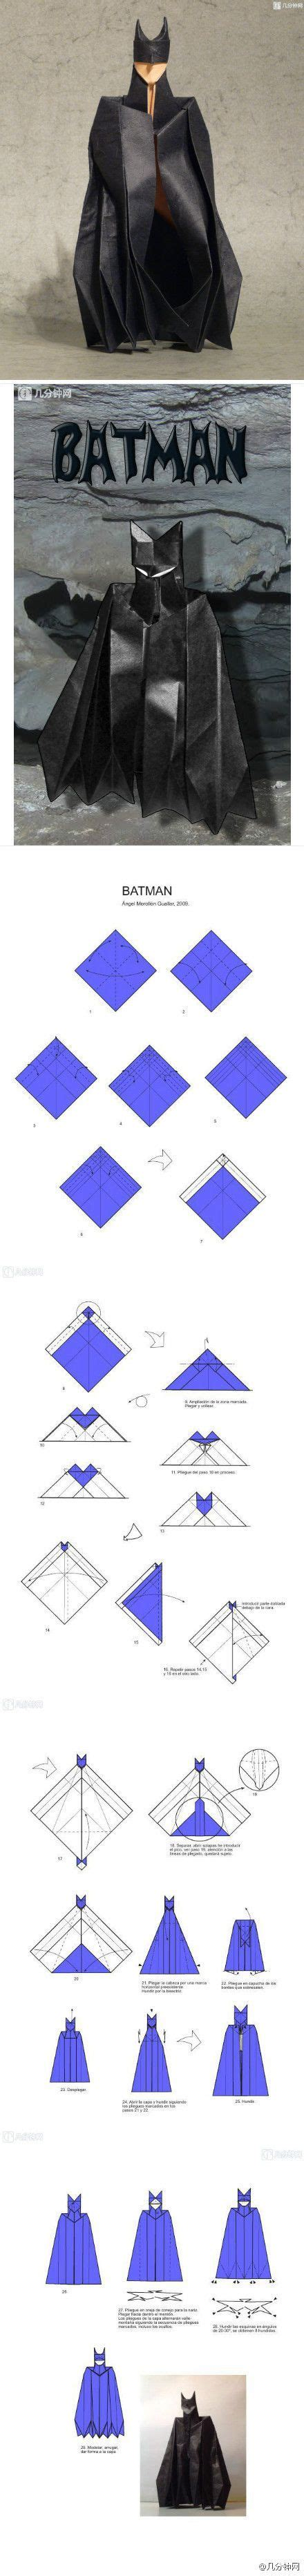 How To Make A Paper Batman - how to make an origami paper batman origami and